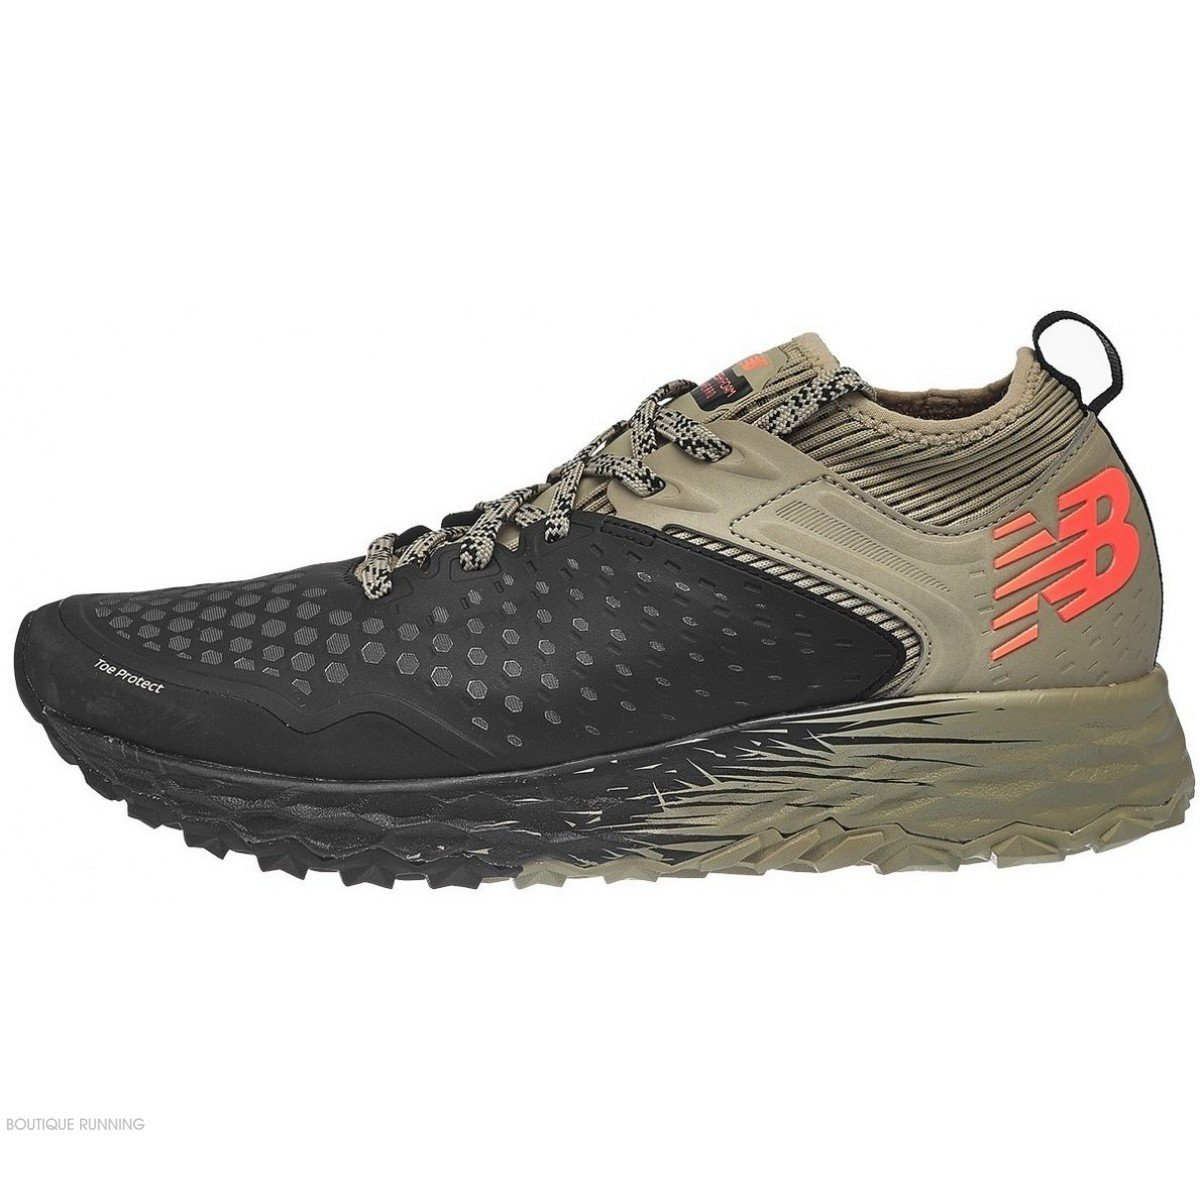 9aa87eb1ea9 chaussures de trail running pour hommes new balance mt hierro v4 mthierb4  Black with Trench   Alpha Orange